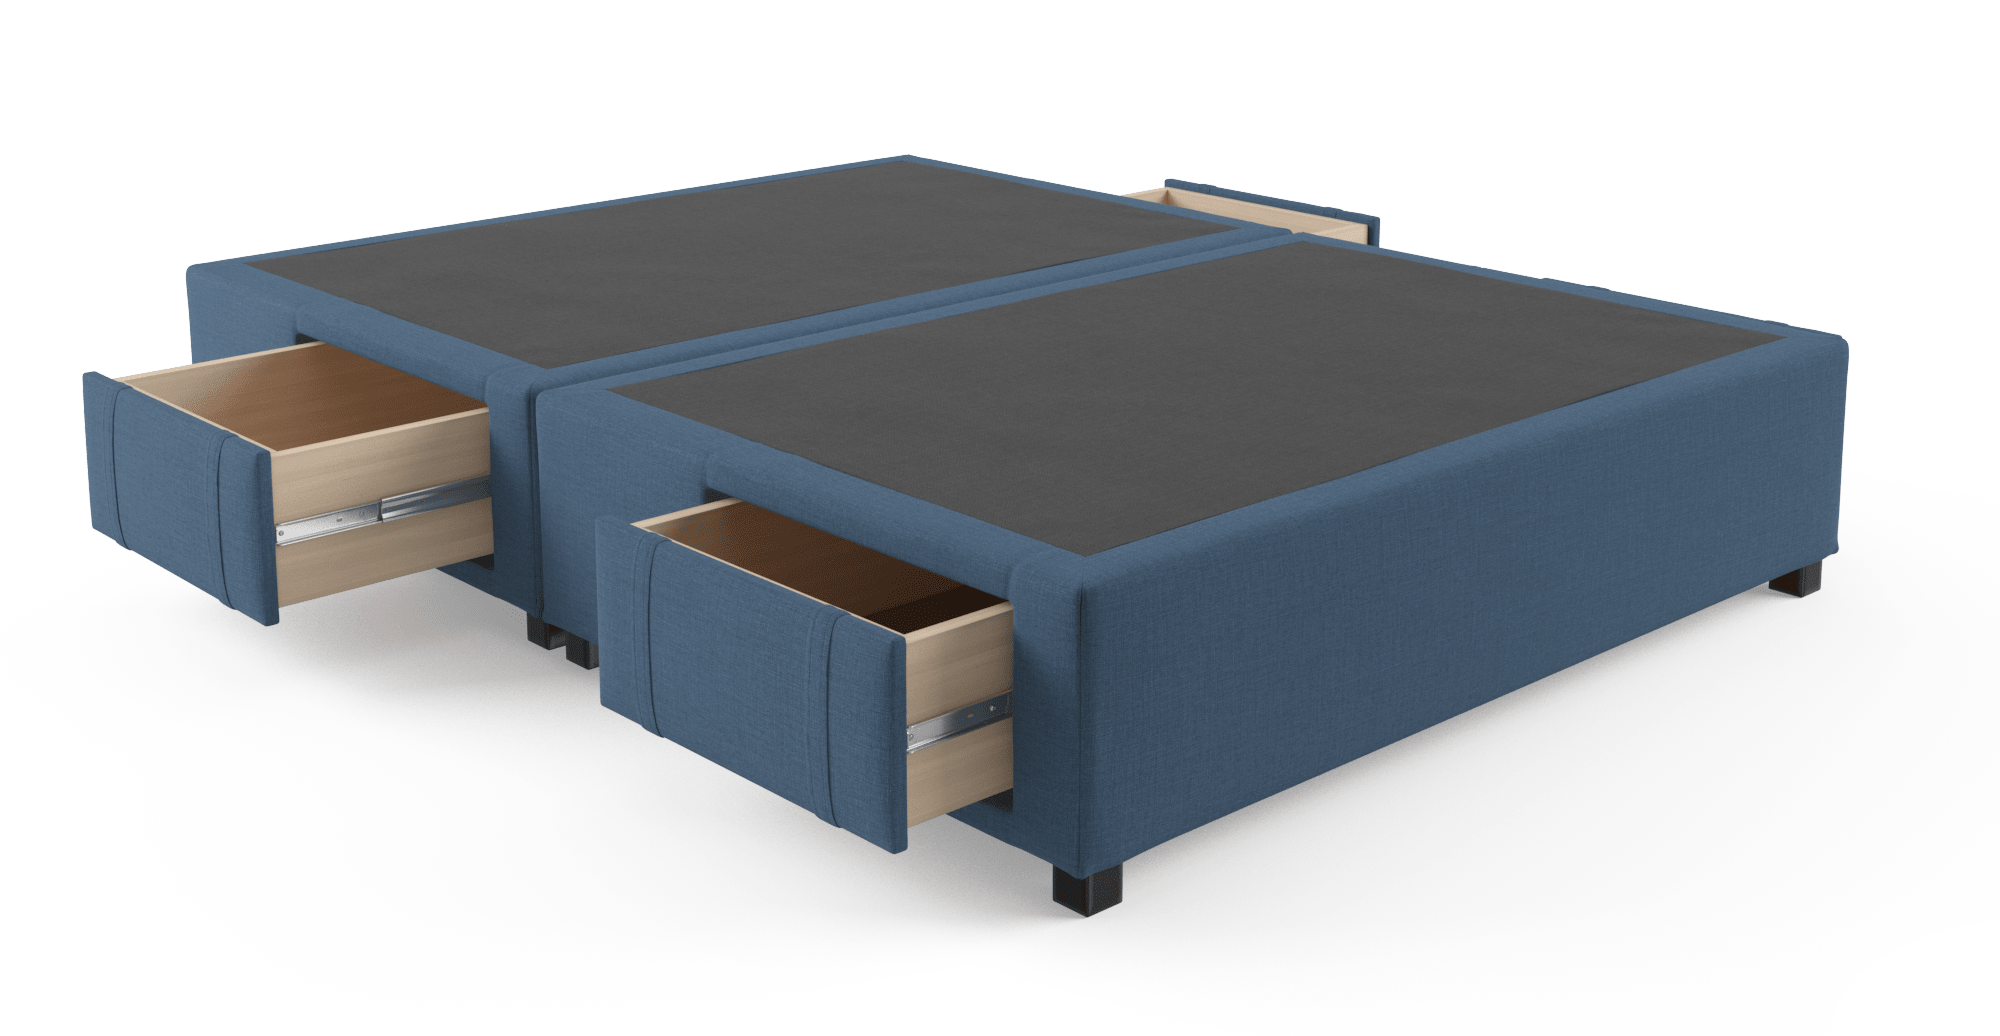 nset body king to ikea bases en slatted your art base zones l gb bed comfort mattresses adjust products standard